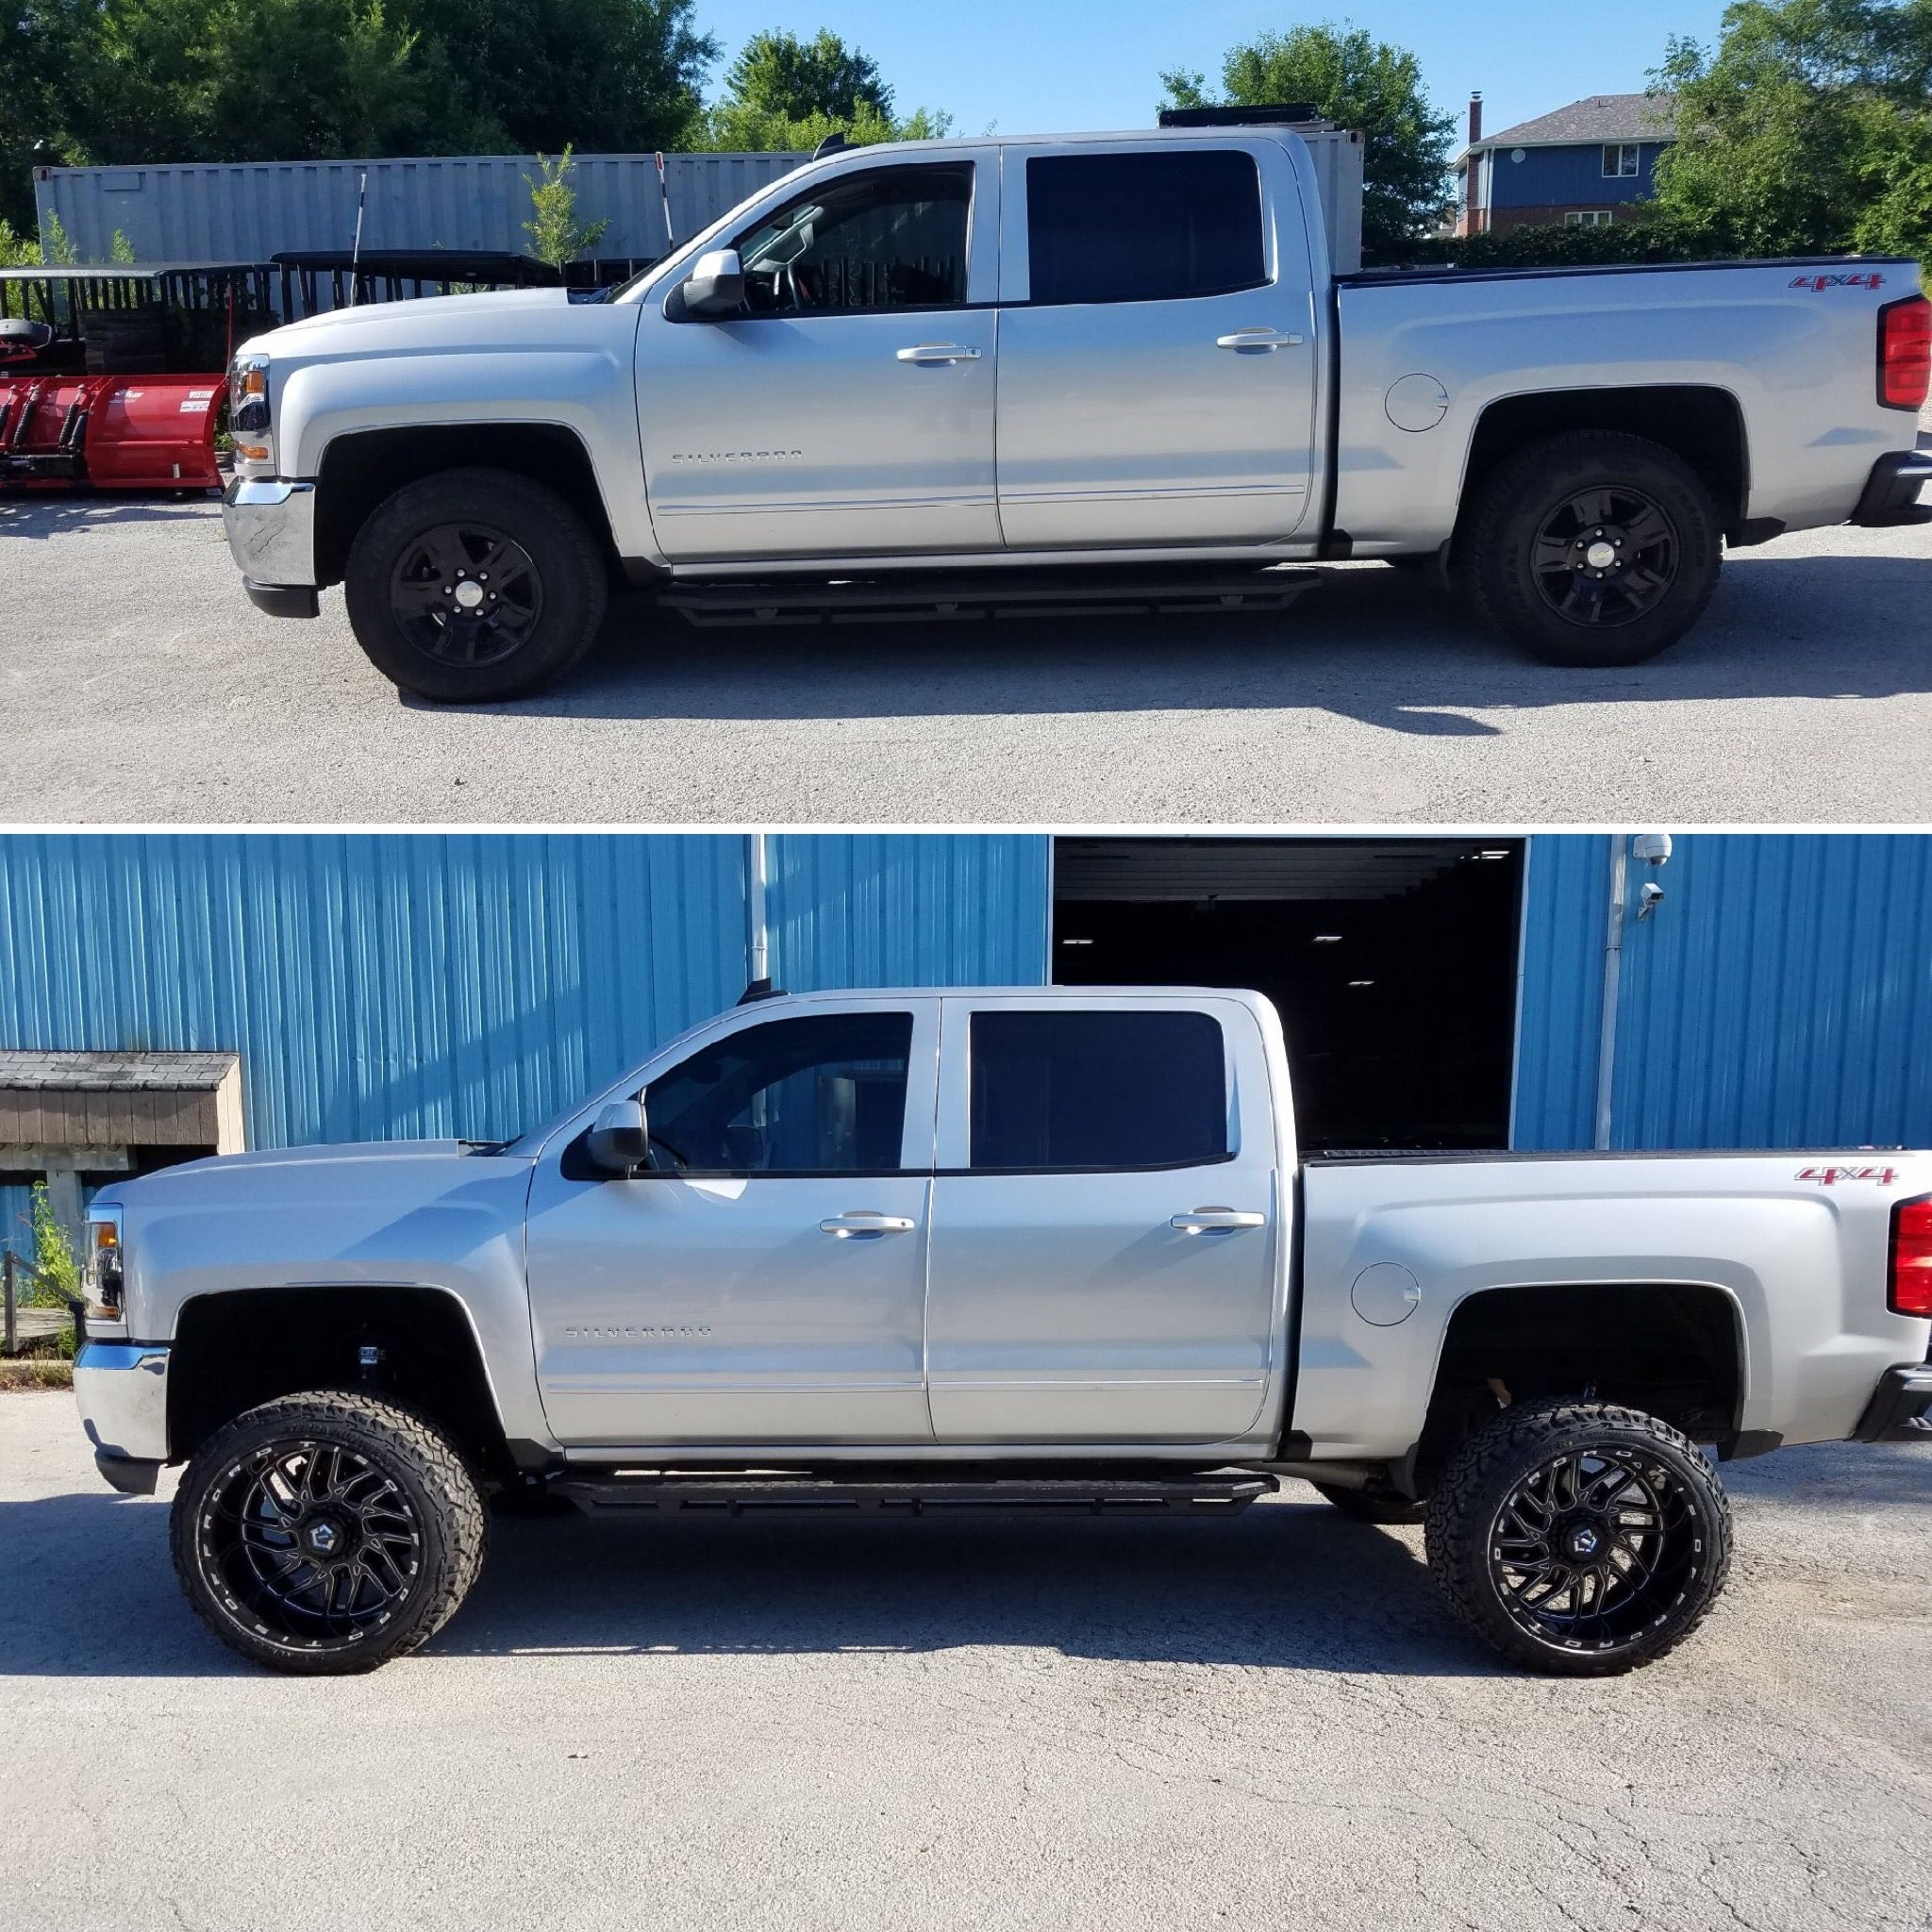 lift kit installation before and after 2017 chevy silverado with 6.6 inch zone offroad lift kit